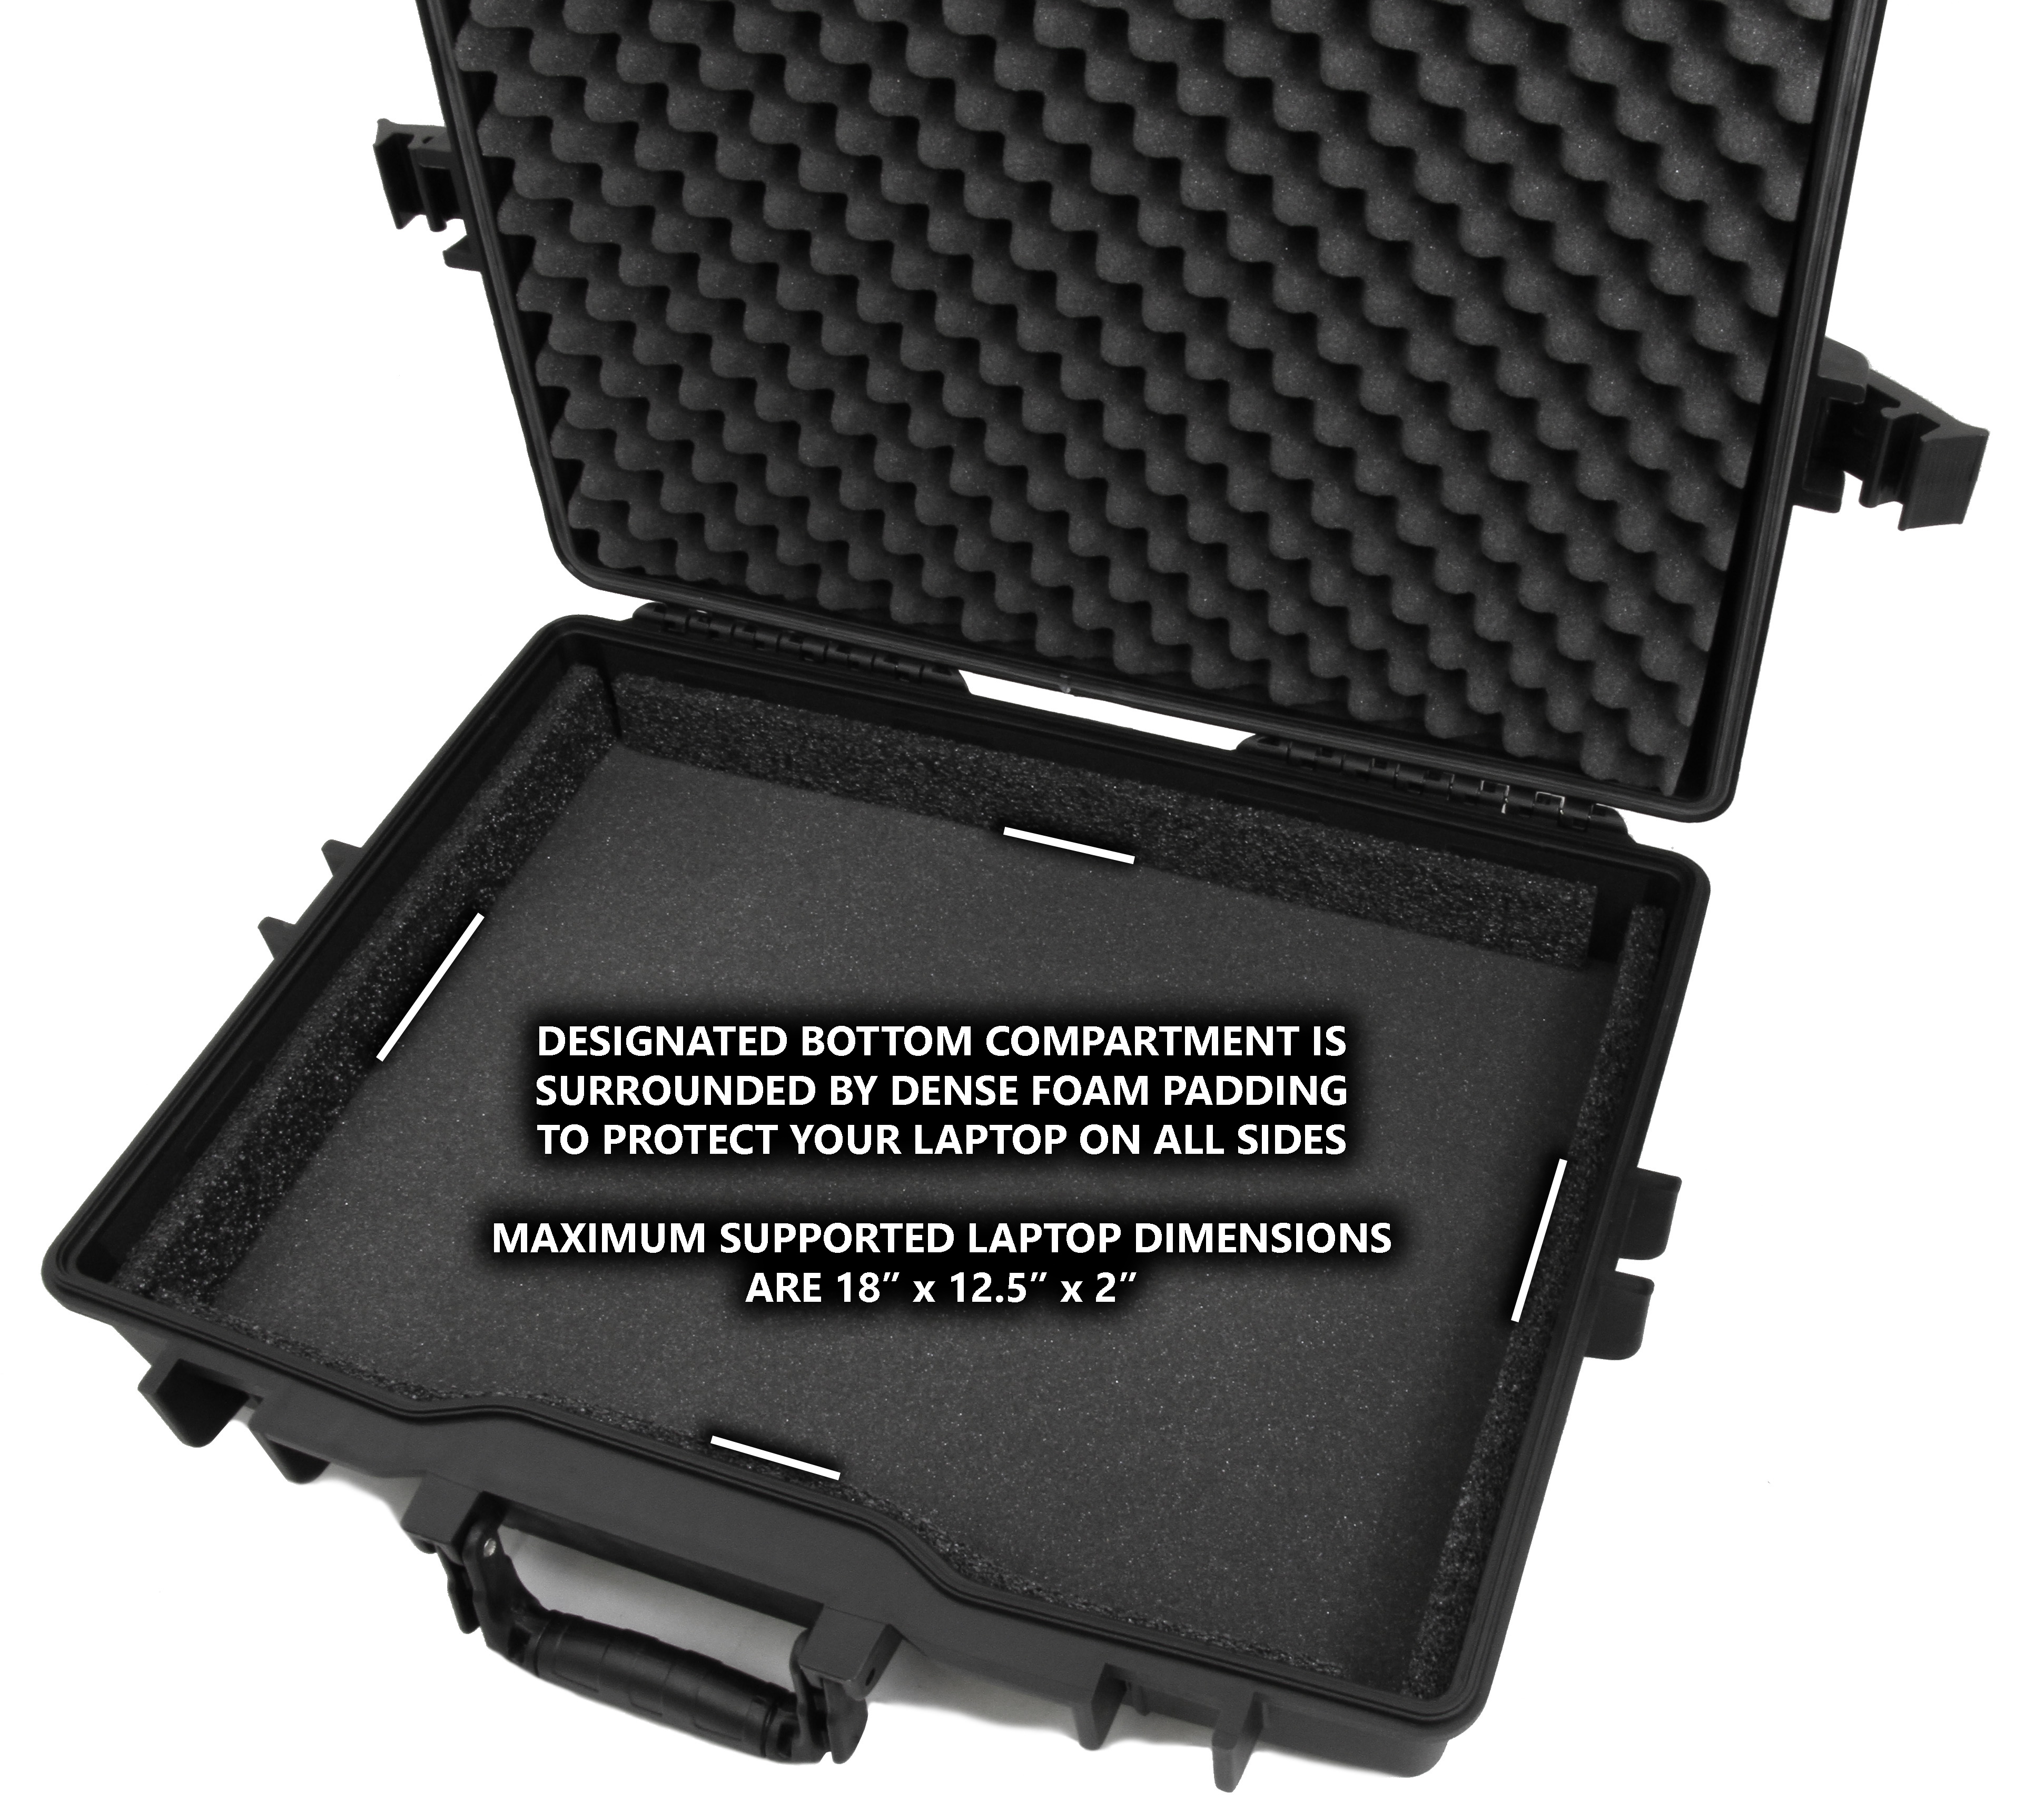 Waterproof Laptop Case For Dell Alienware Laptop Alienware AW17R4 and More